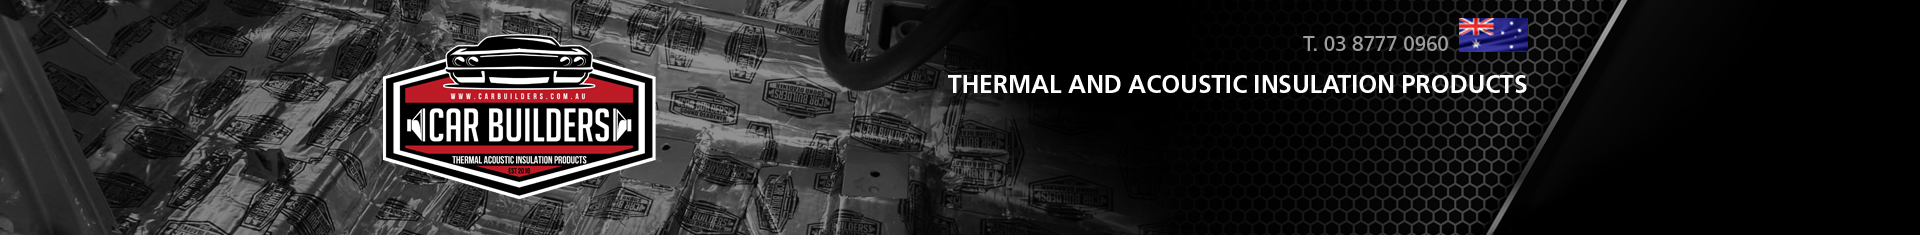 Car Builders - Thermal & Acoustic Insulation Products